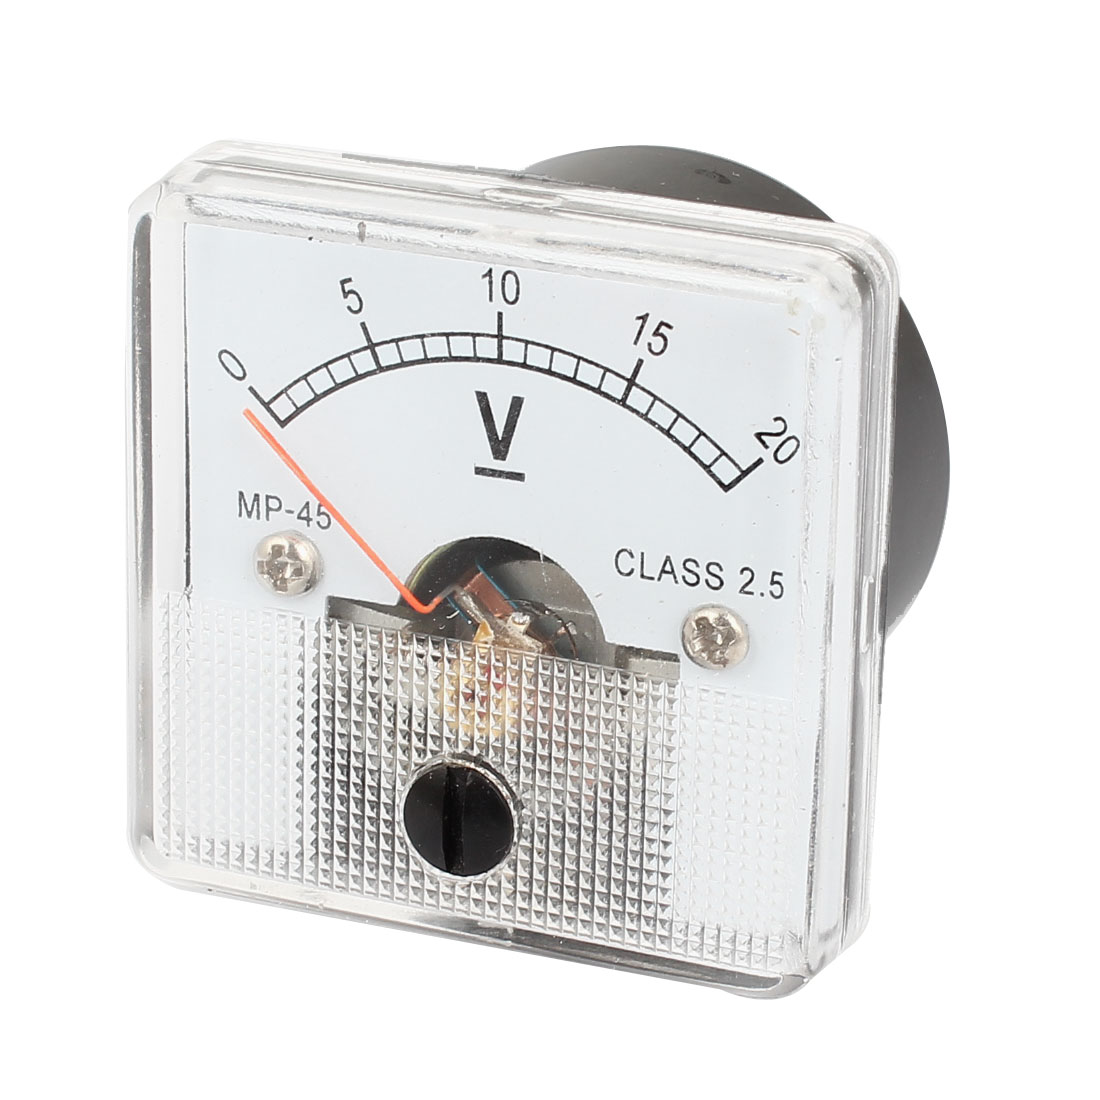 MP-45 DC 0-20V Class 2.5 Accuracy Fine Tuning Analog Voltage Meter Voltmeter